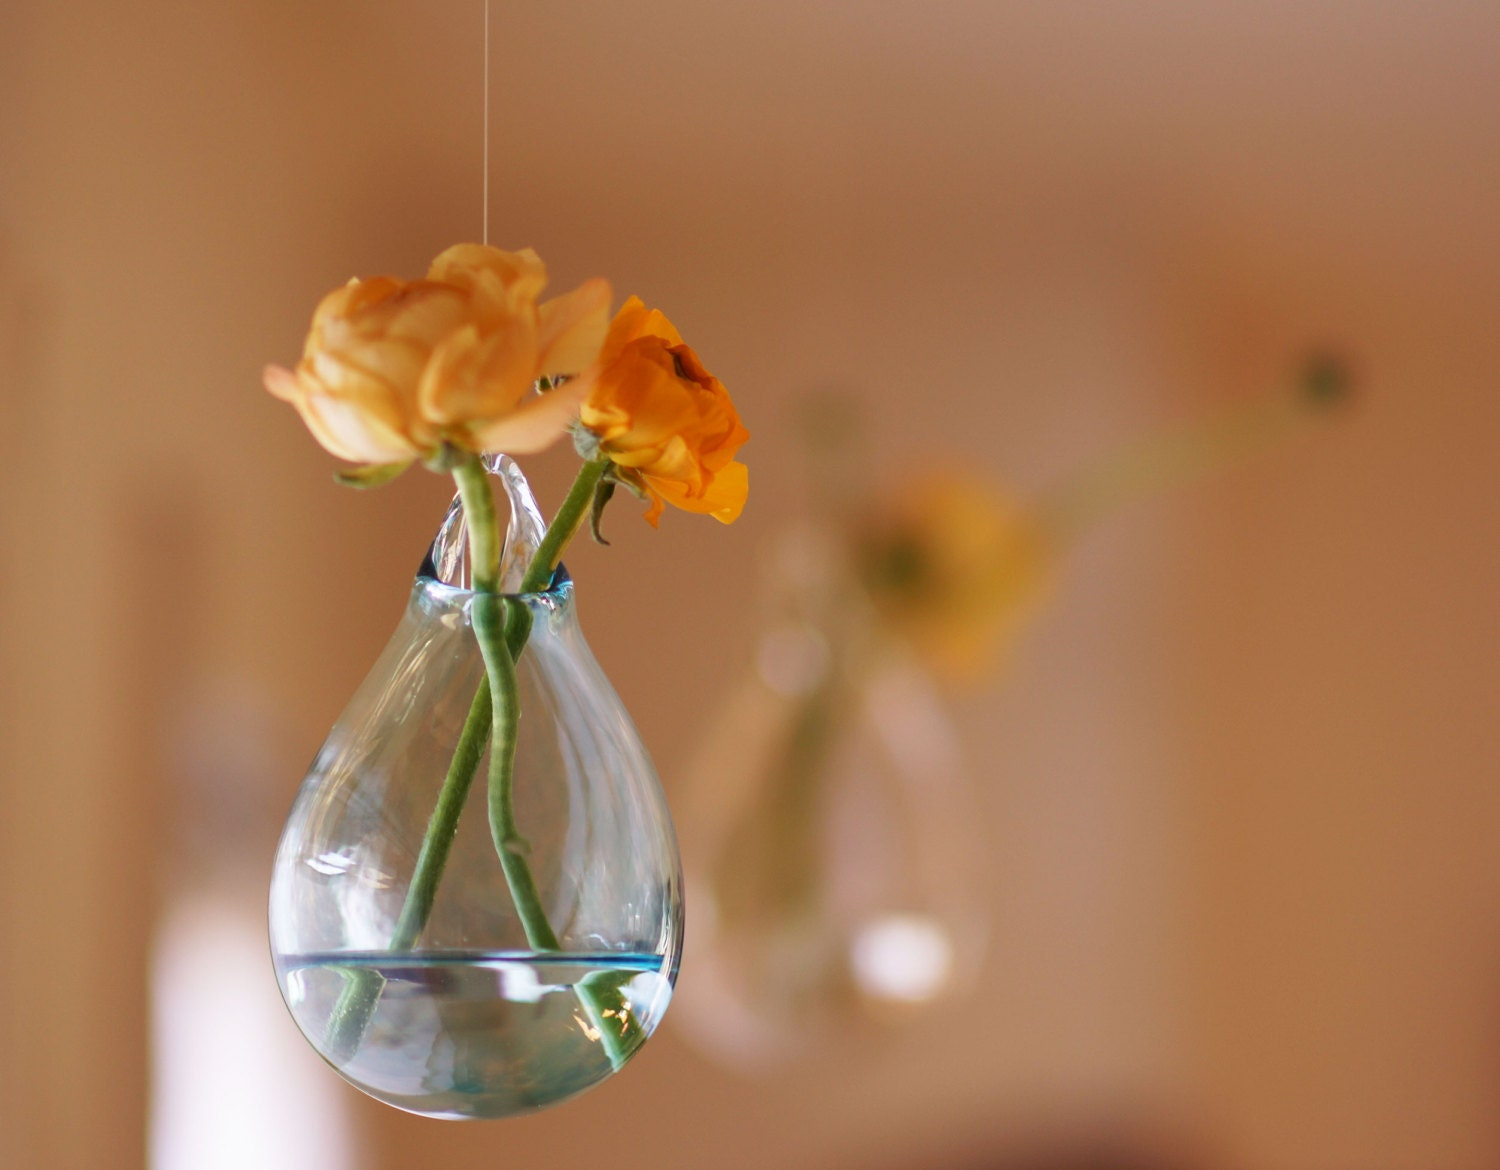 Hanging glass flower vase hand blown glass art transparent zoom reviewsmspy